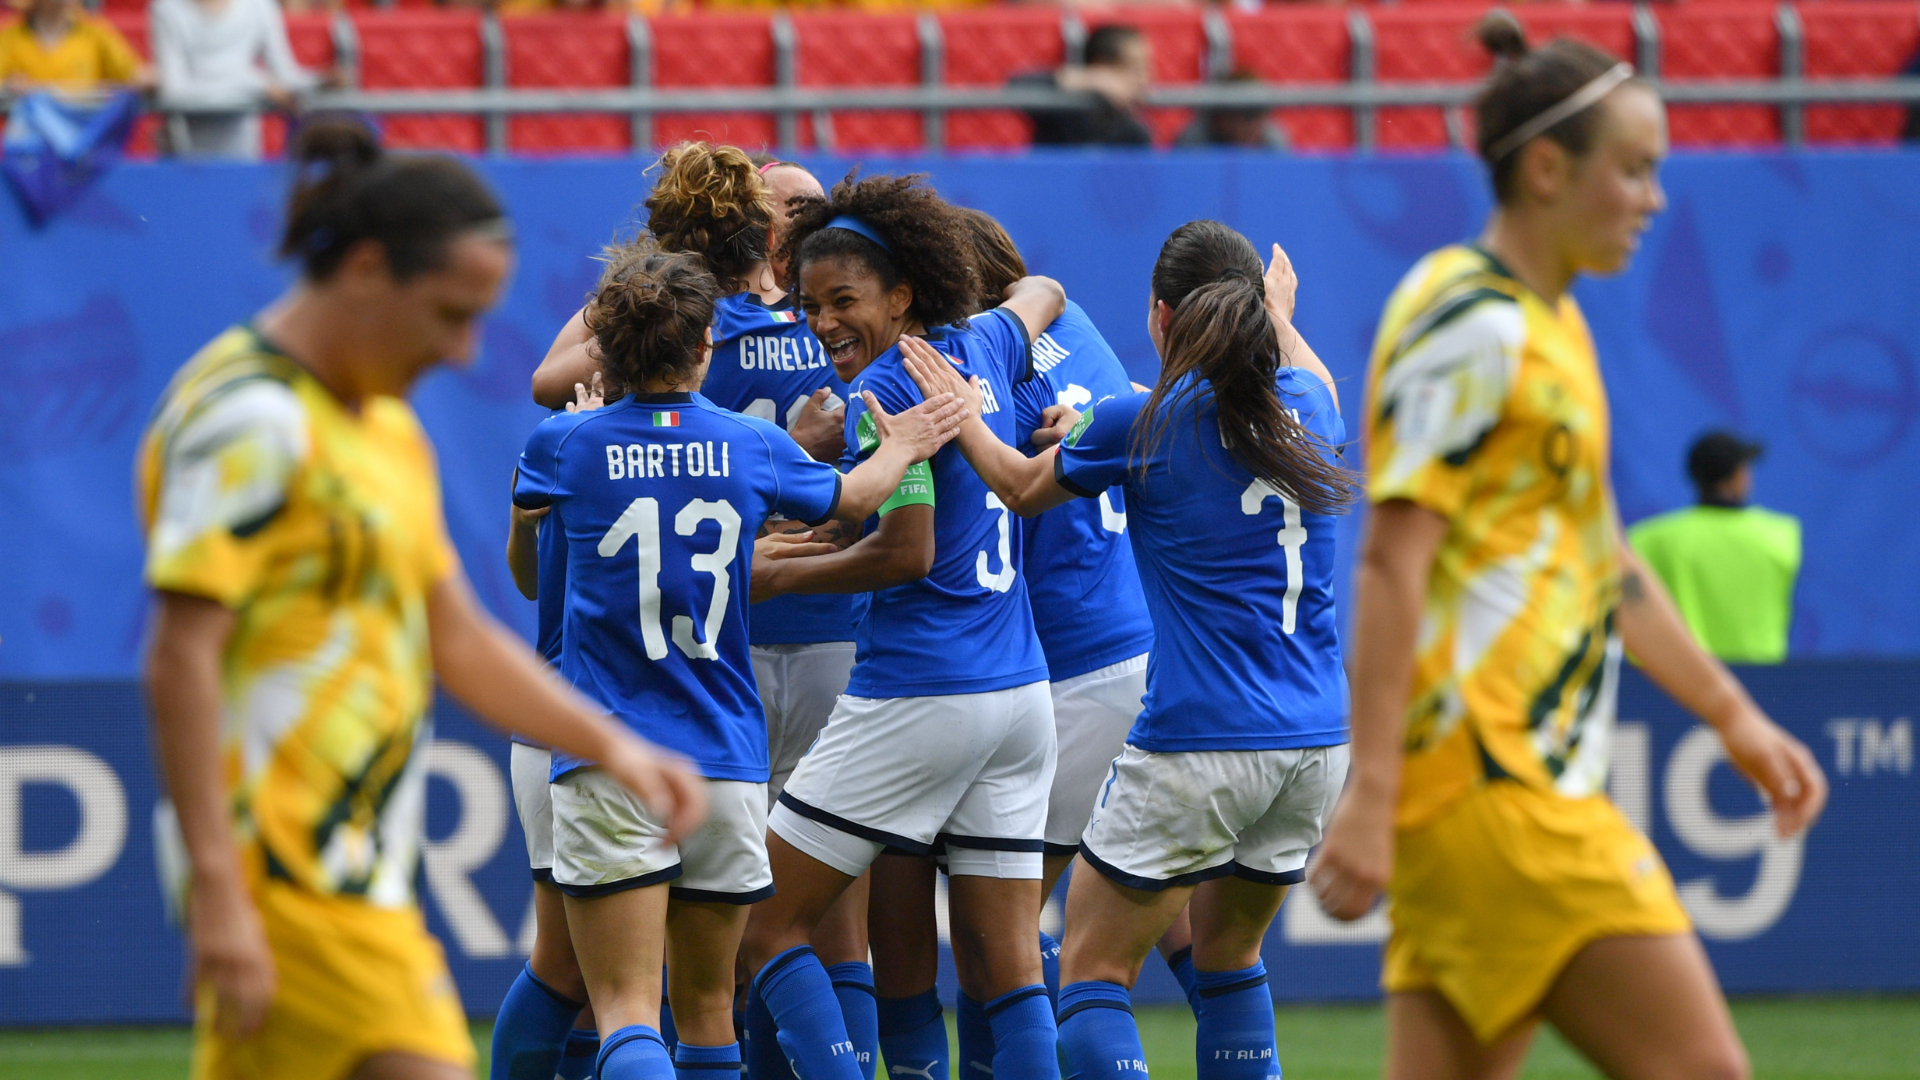 Bonansea scores twice in Italy's win over Australia